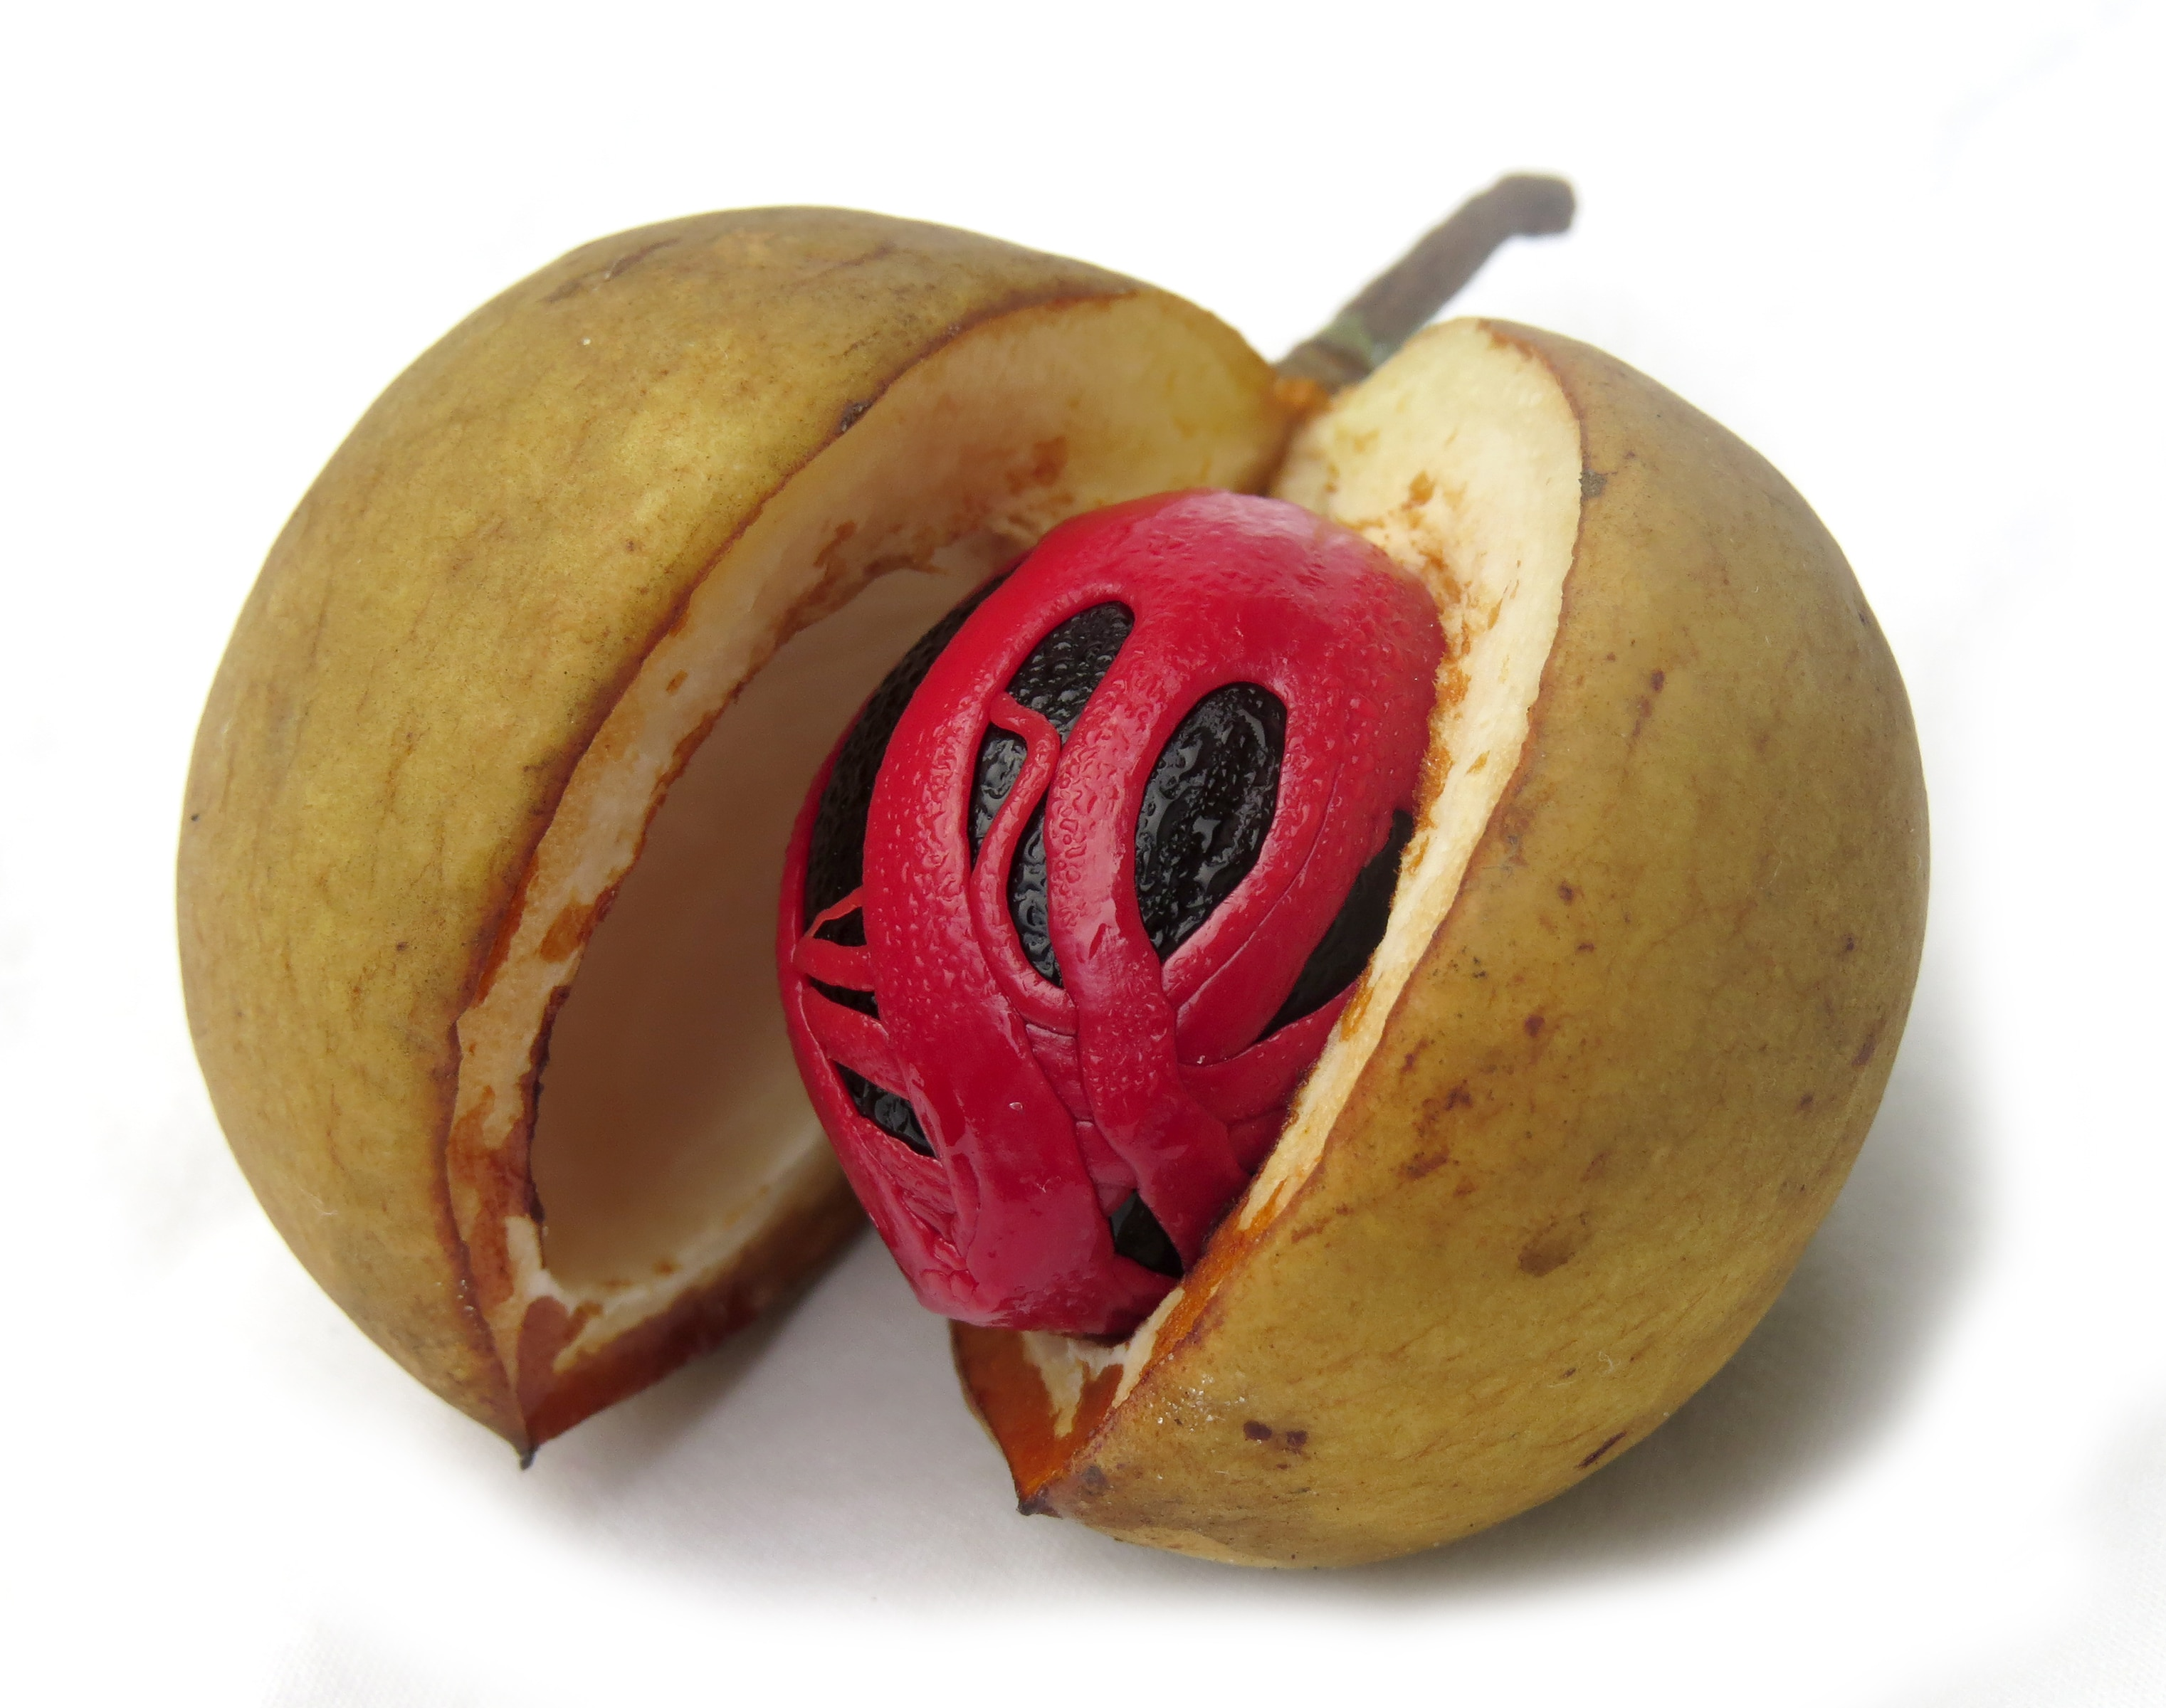 Fresh nutmeg with its mace outer shell embedded within the fruit (Shutterstock)